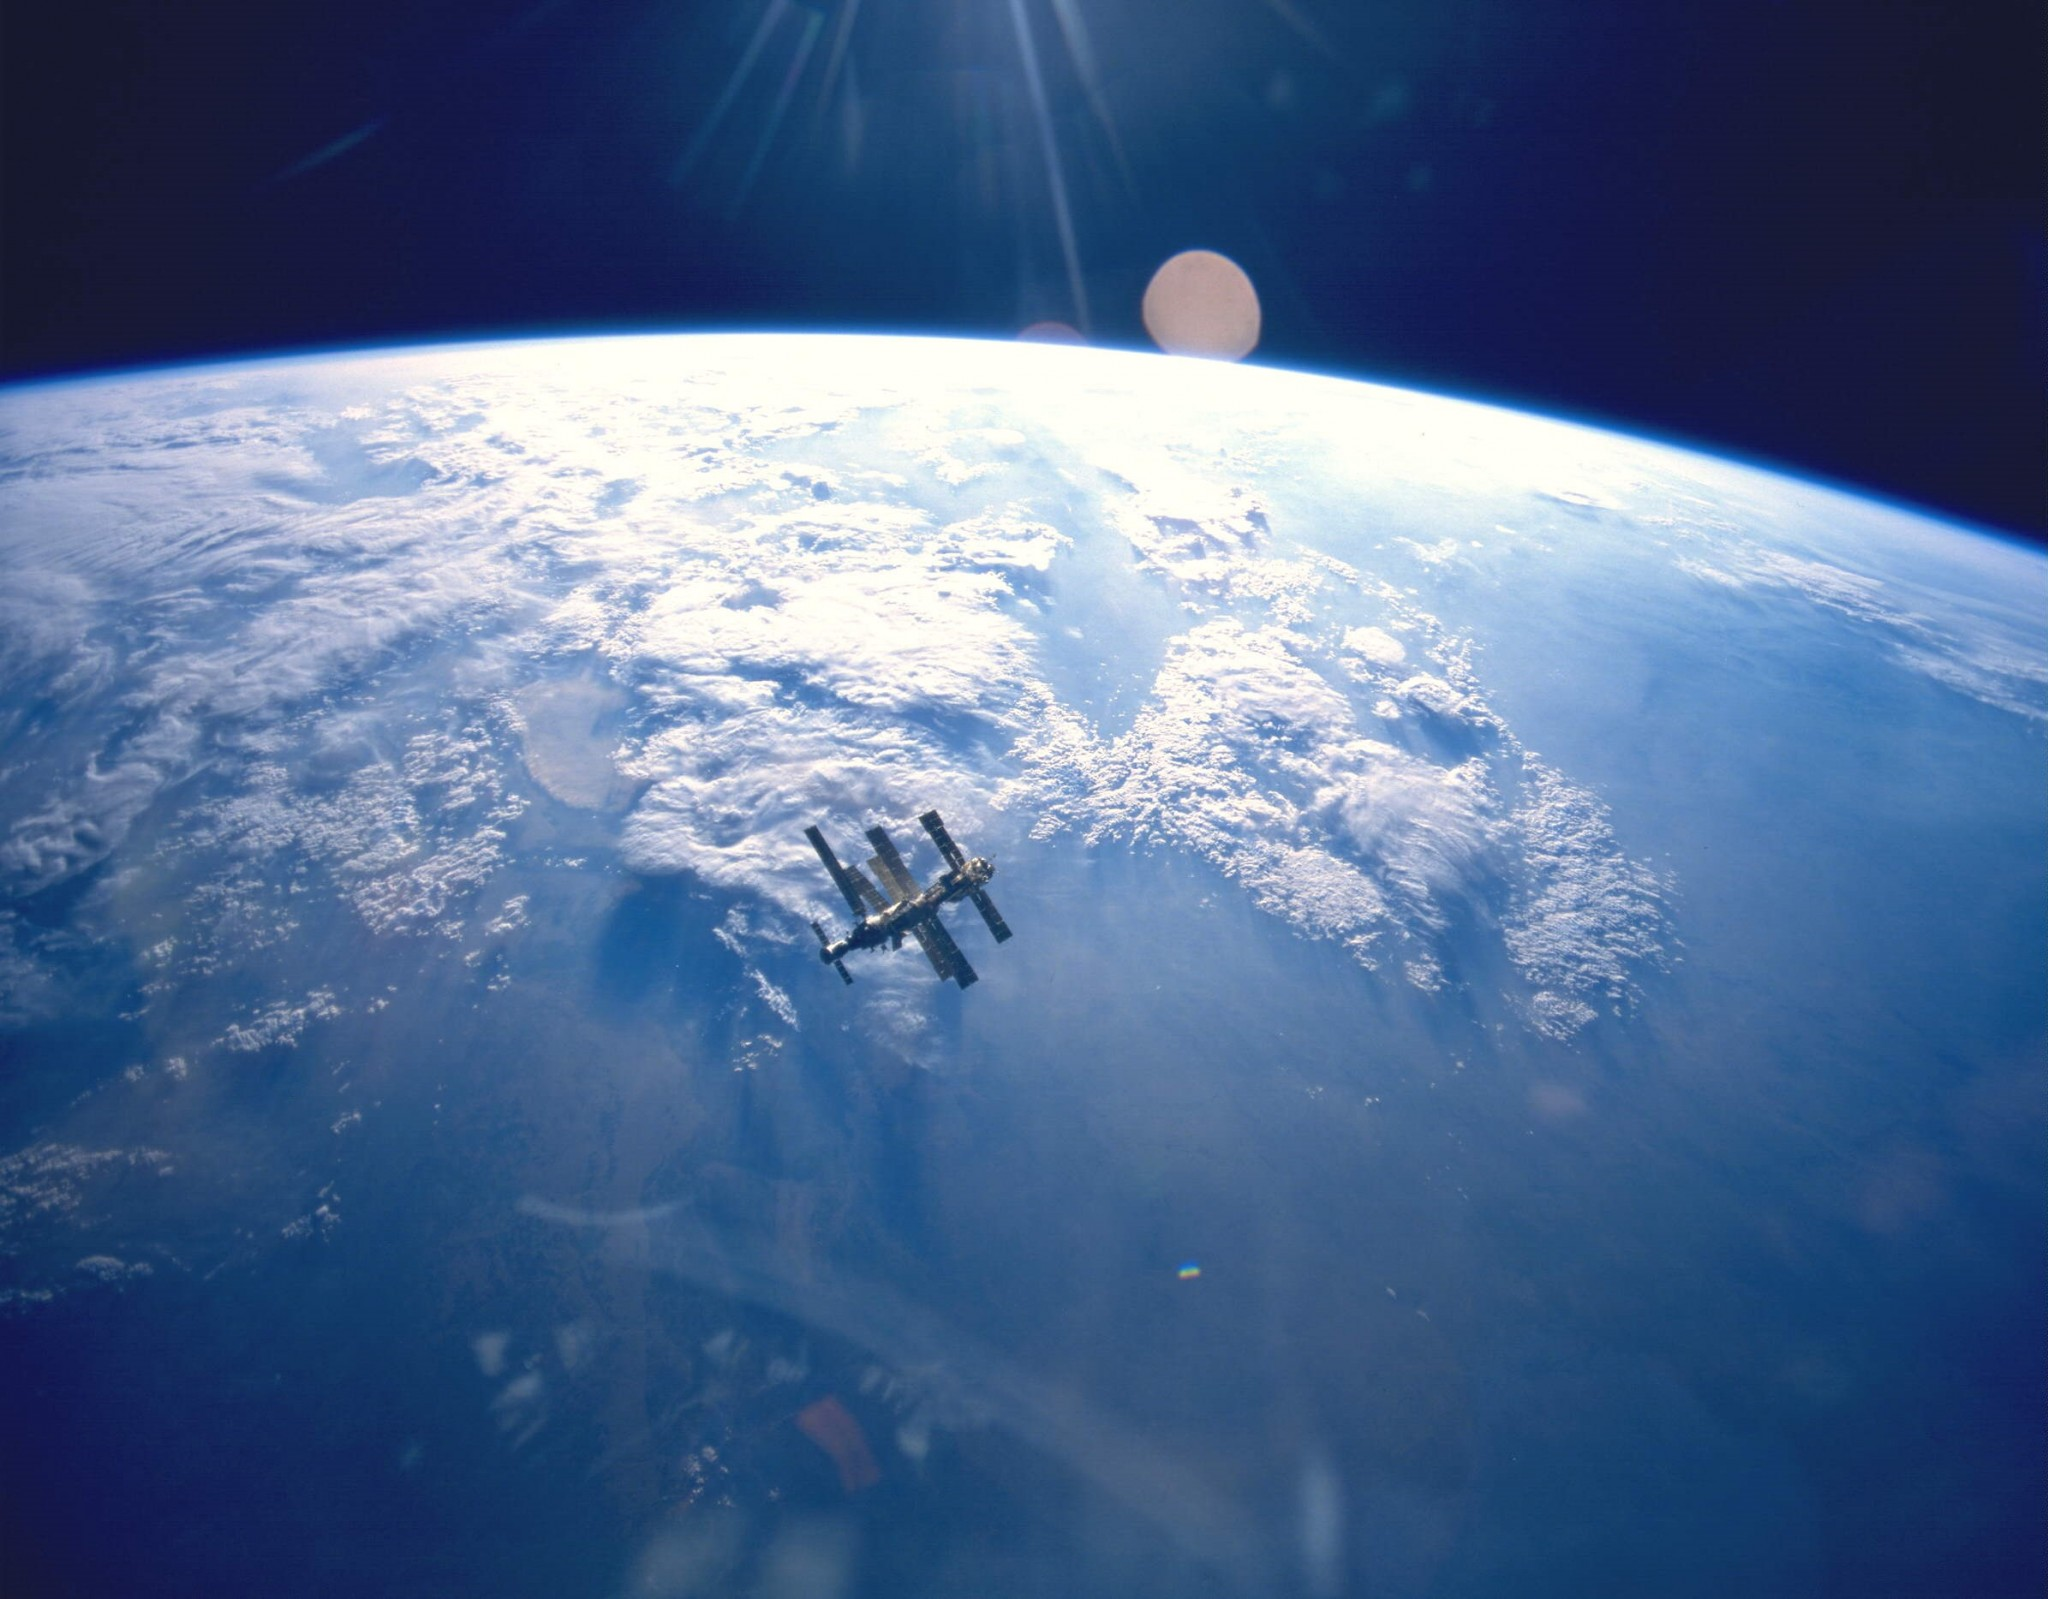 Earth, as viewed from space, with the Shuttle Mir in the foreground. Photo: NASA.